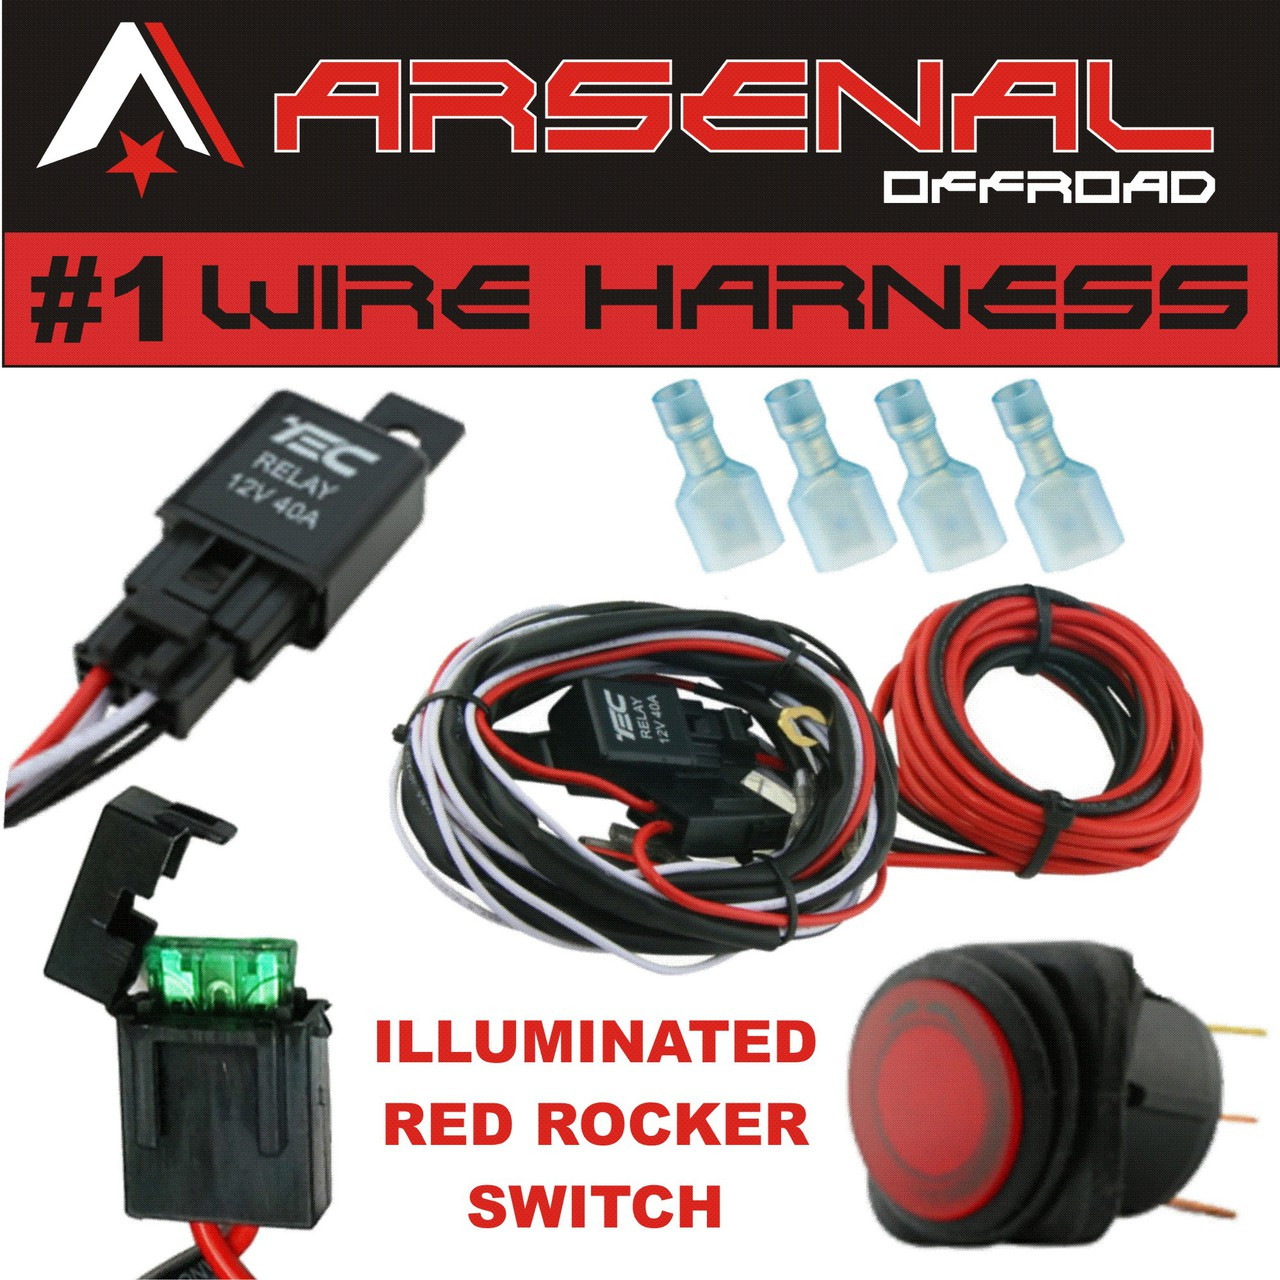 ARSENAL_NEW_WIRE_HARNESS__76387.1468350359.1280.1280?c=2 1 40 amp universal wiring harness comes with 40 relay, illuminated on off rocker switch for offroad led light bars and work lights, jeep, atv, utv,